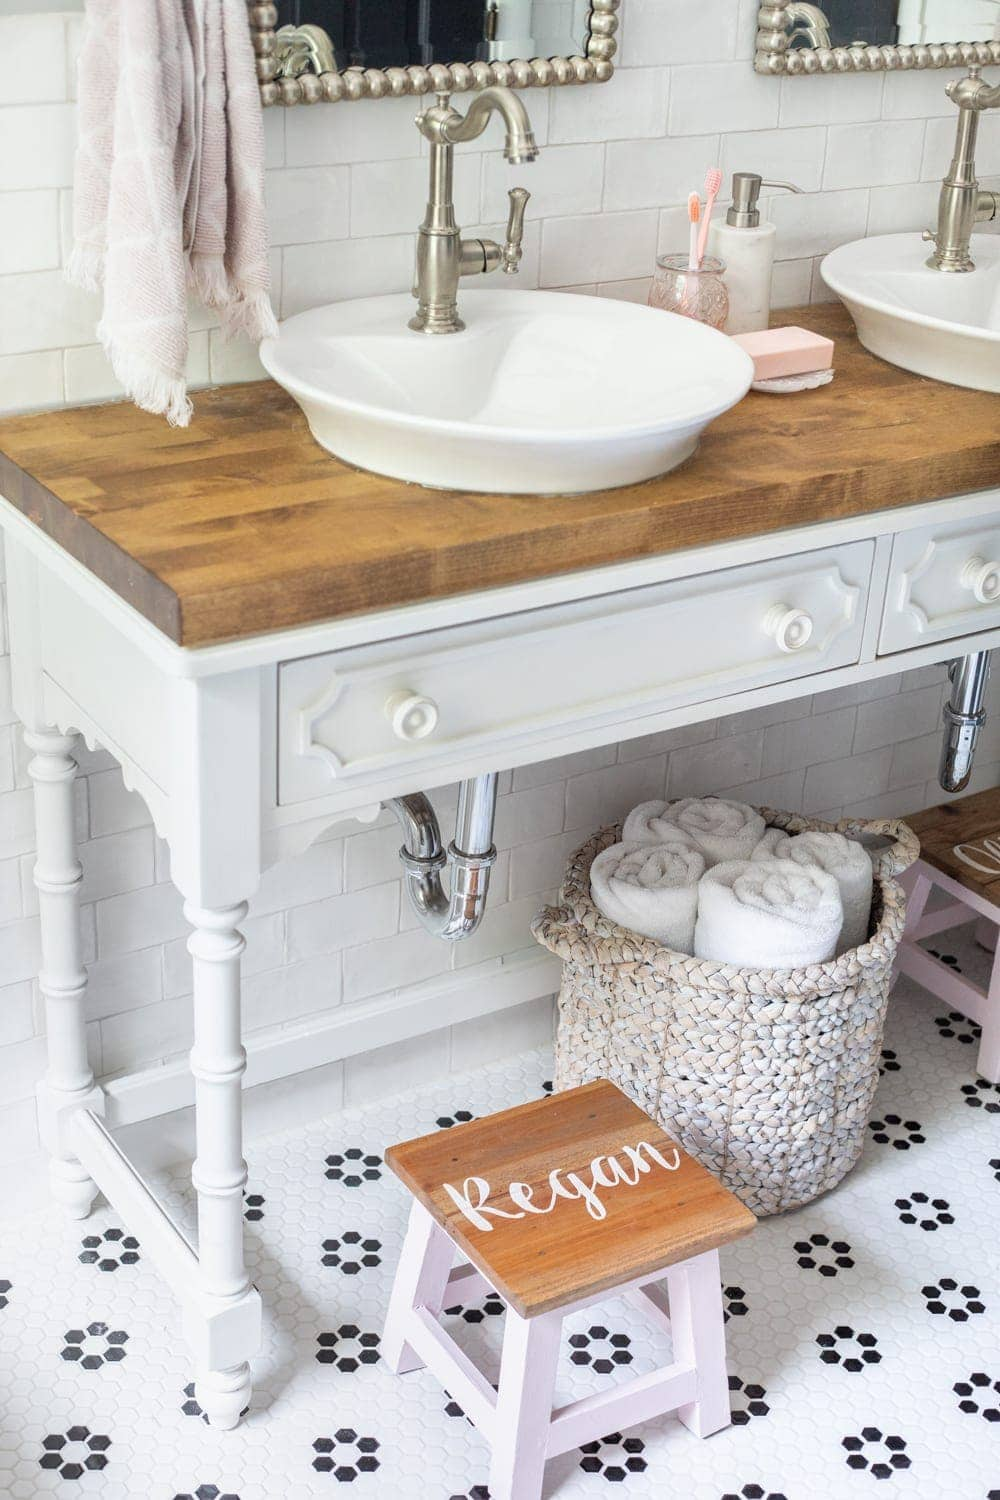 Girls' Bathroom Decor Details & Sources | Console table converted into a vanity with vessel sinks and personalized step stools